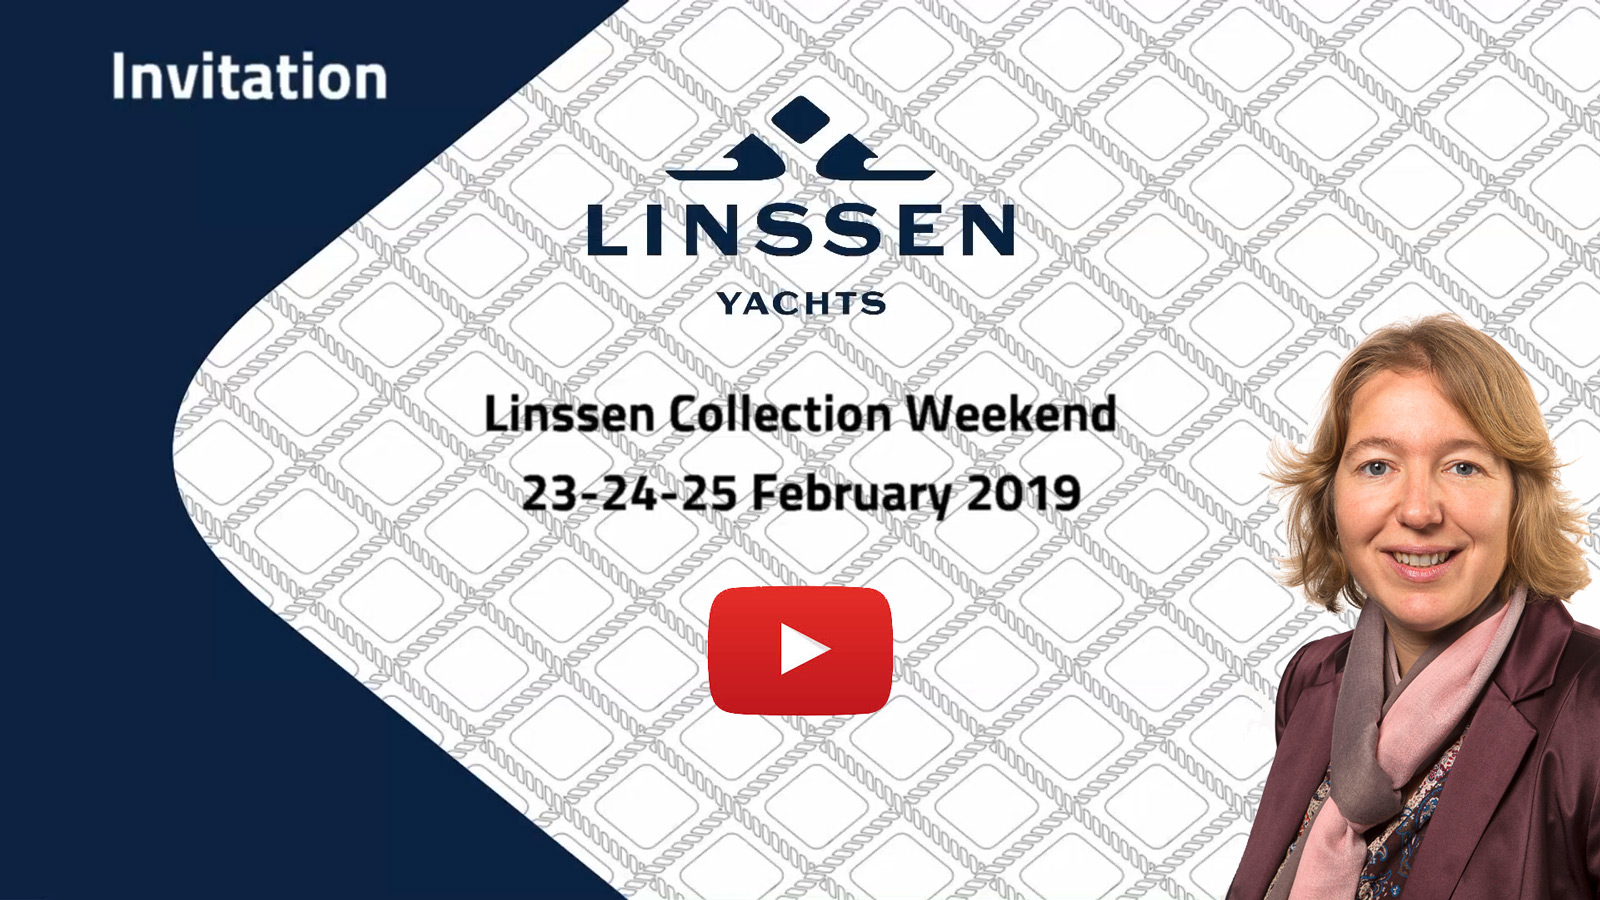 Yvonne Linssen invites you to the Linssen Collection Weekend